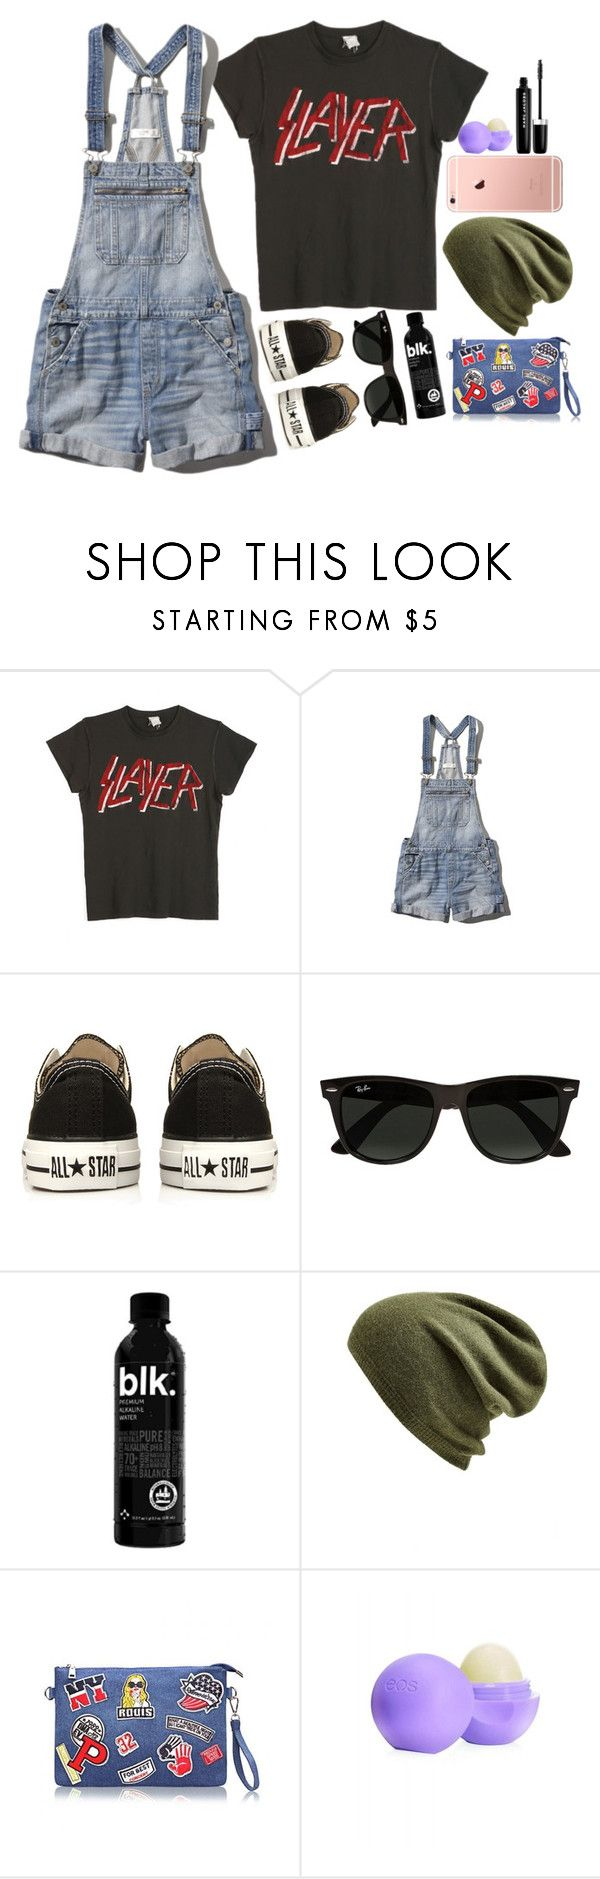 """100 Day Challenge! Day 3: Day around town"" by cosmic-calum ❤ liked on Polyvore featuring MadeWorn, Abercrombie & Fitch, Converse, Ray-Ban, Echo, Eos and Marc Jacobs"